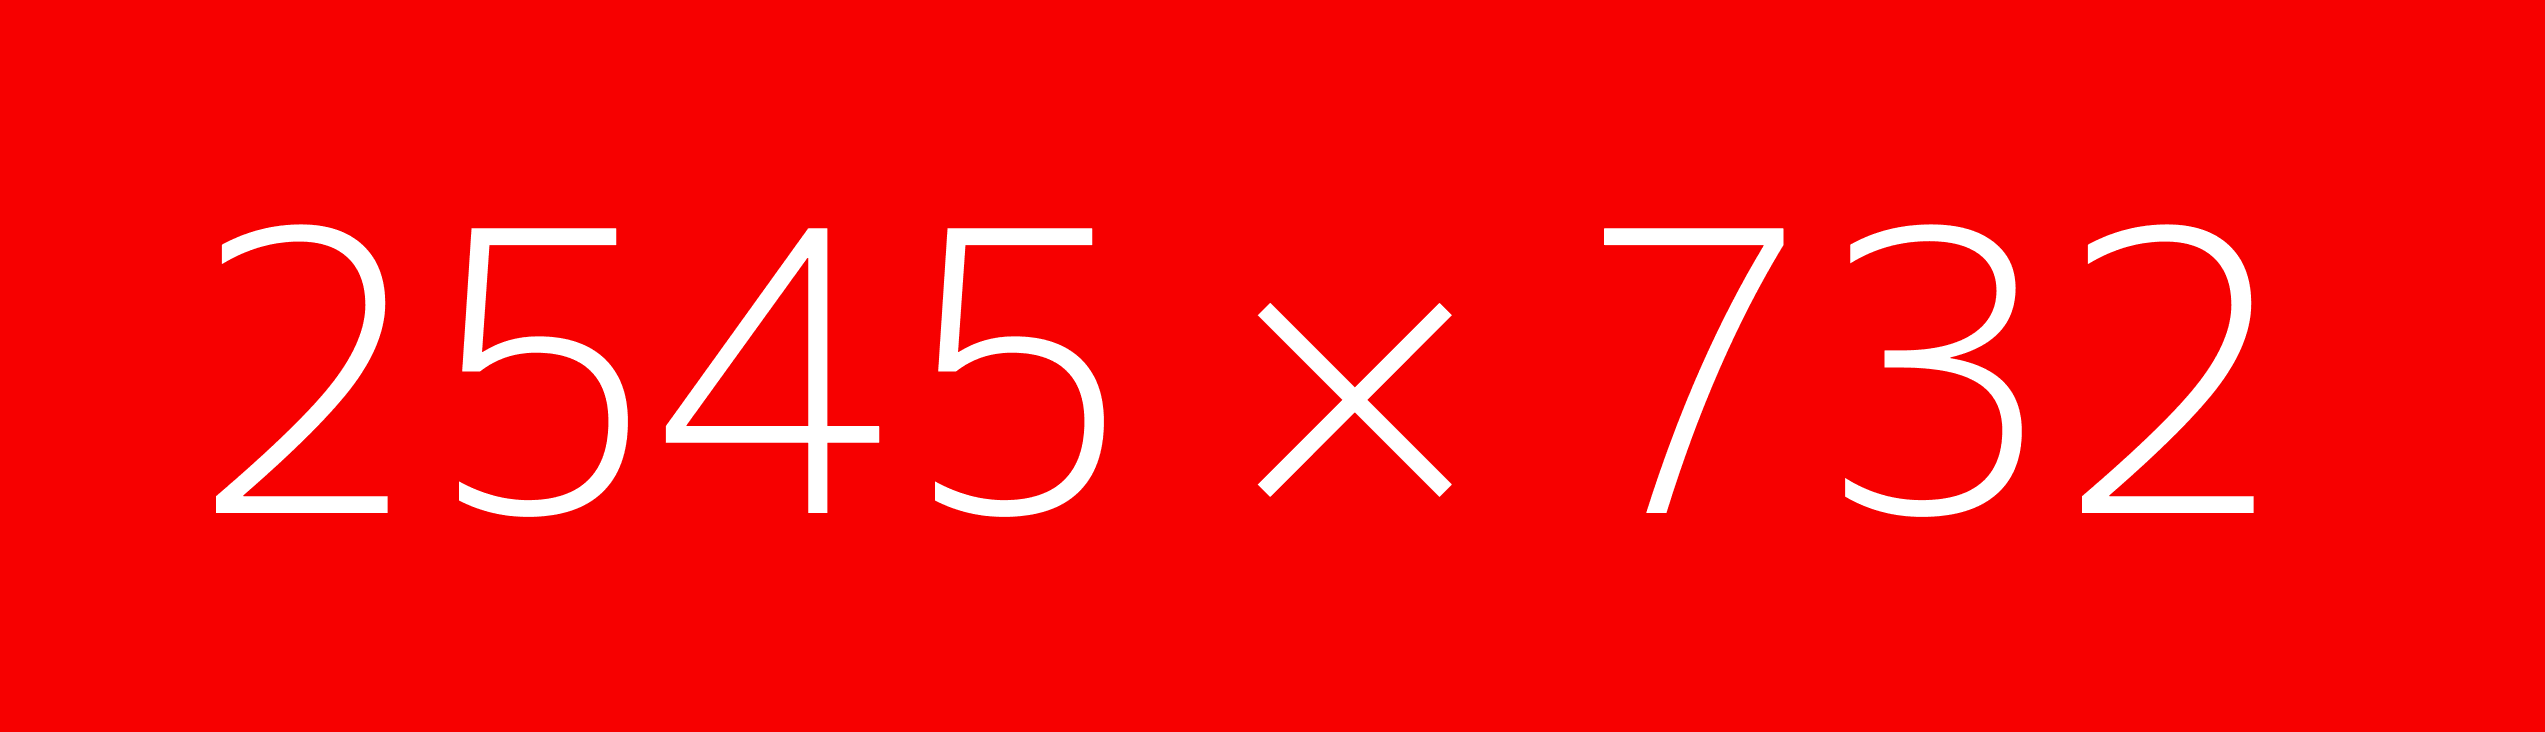 2545x732red